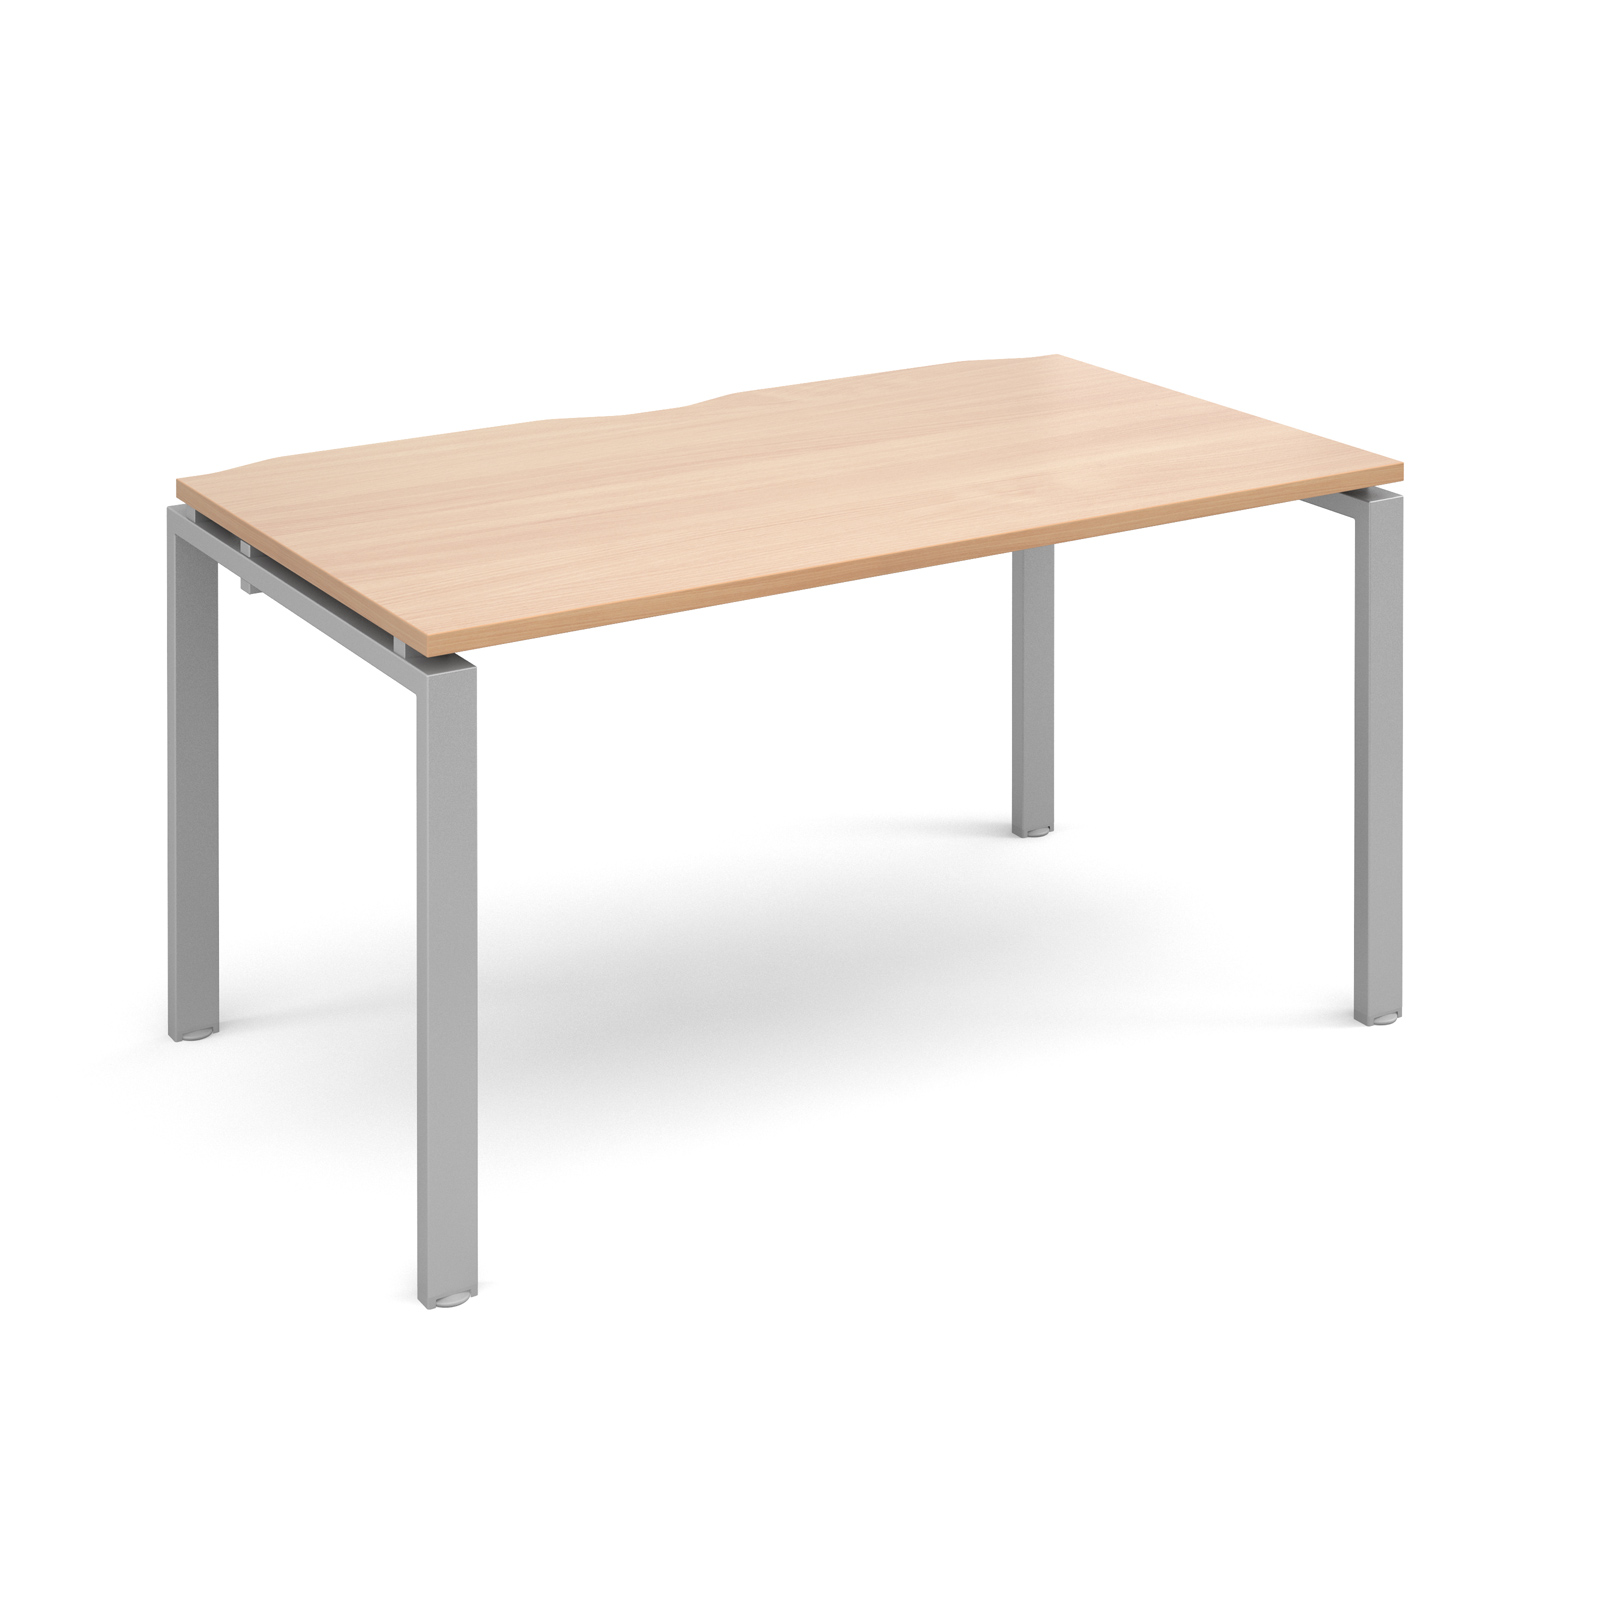 Image for Adapt II Starter Unit Single 1400x800mm Silver Frame Beech Top